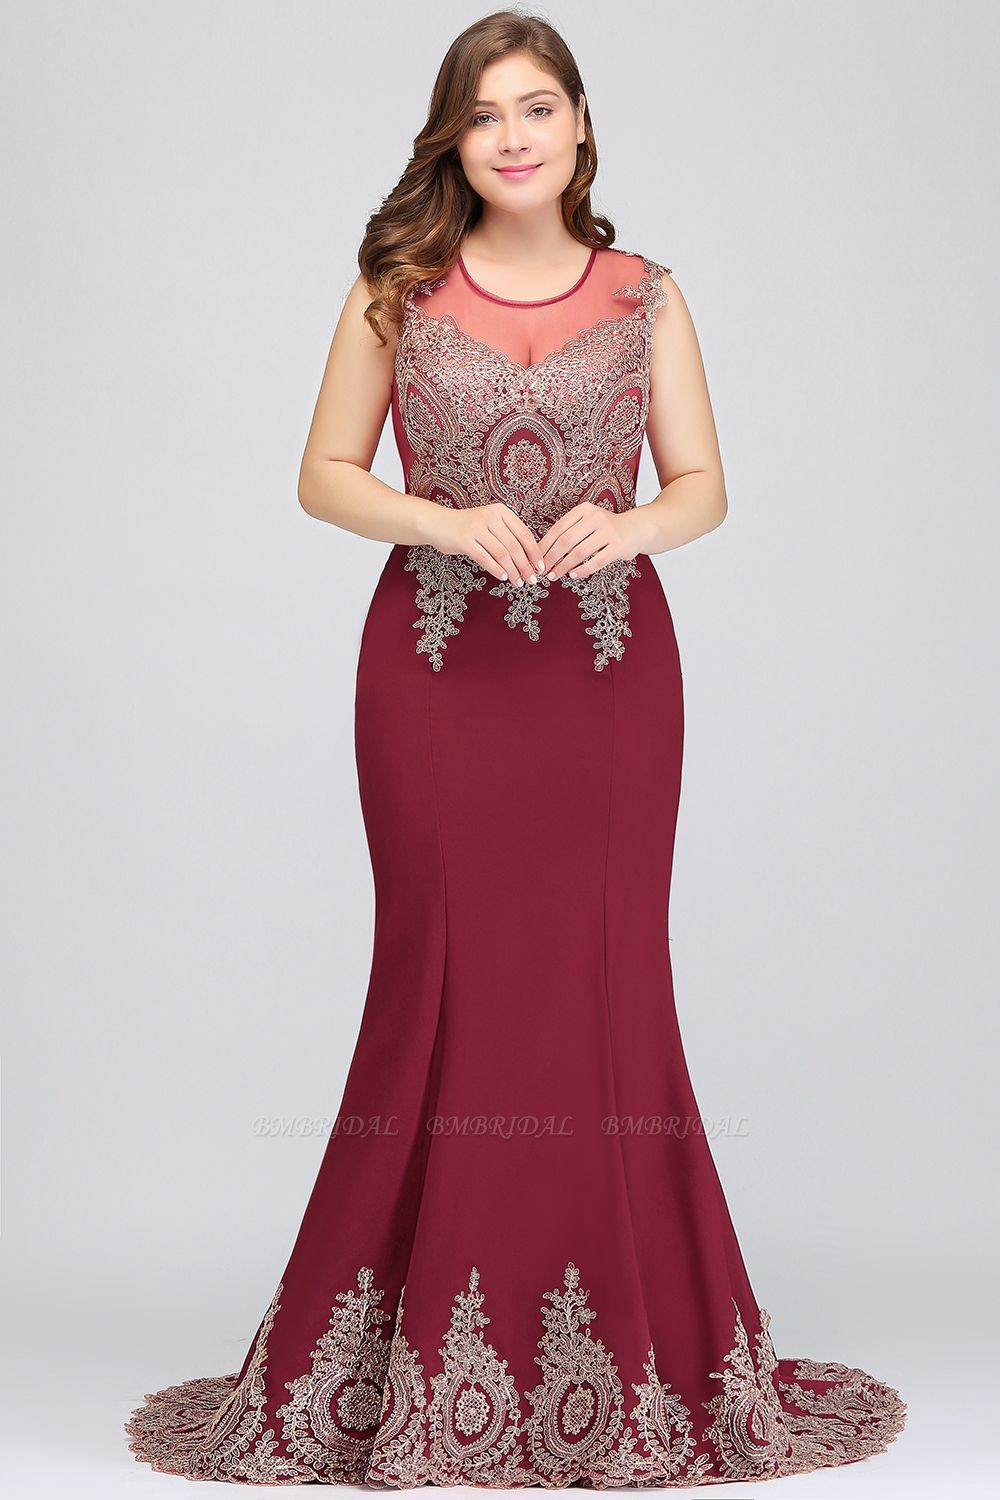 BMbridal Mermaid Court Train Chiffon Evening Dress with Appliques